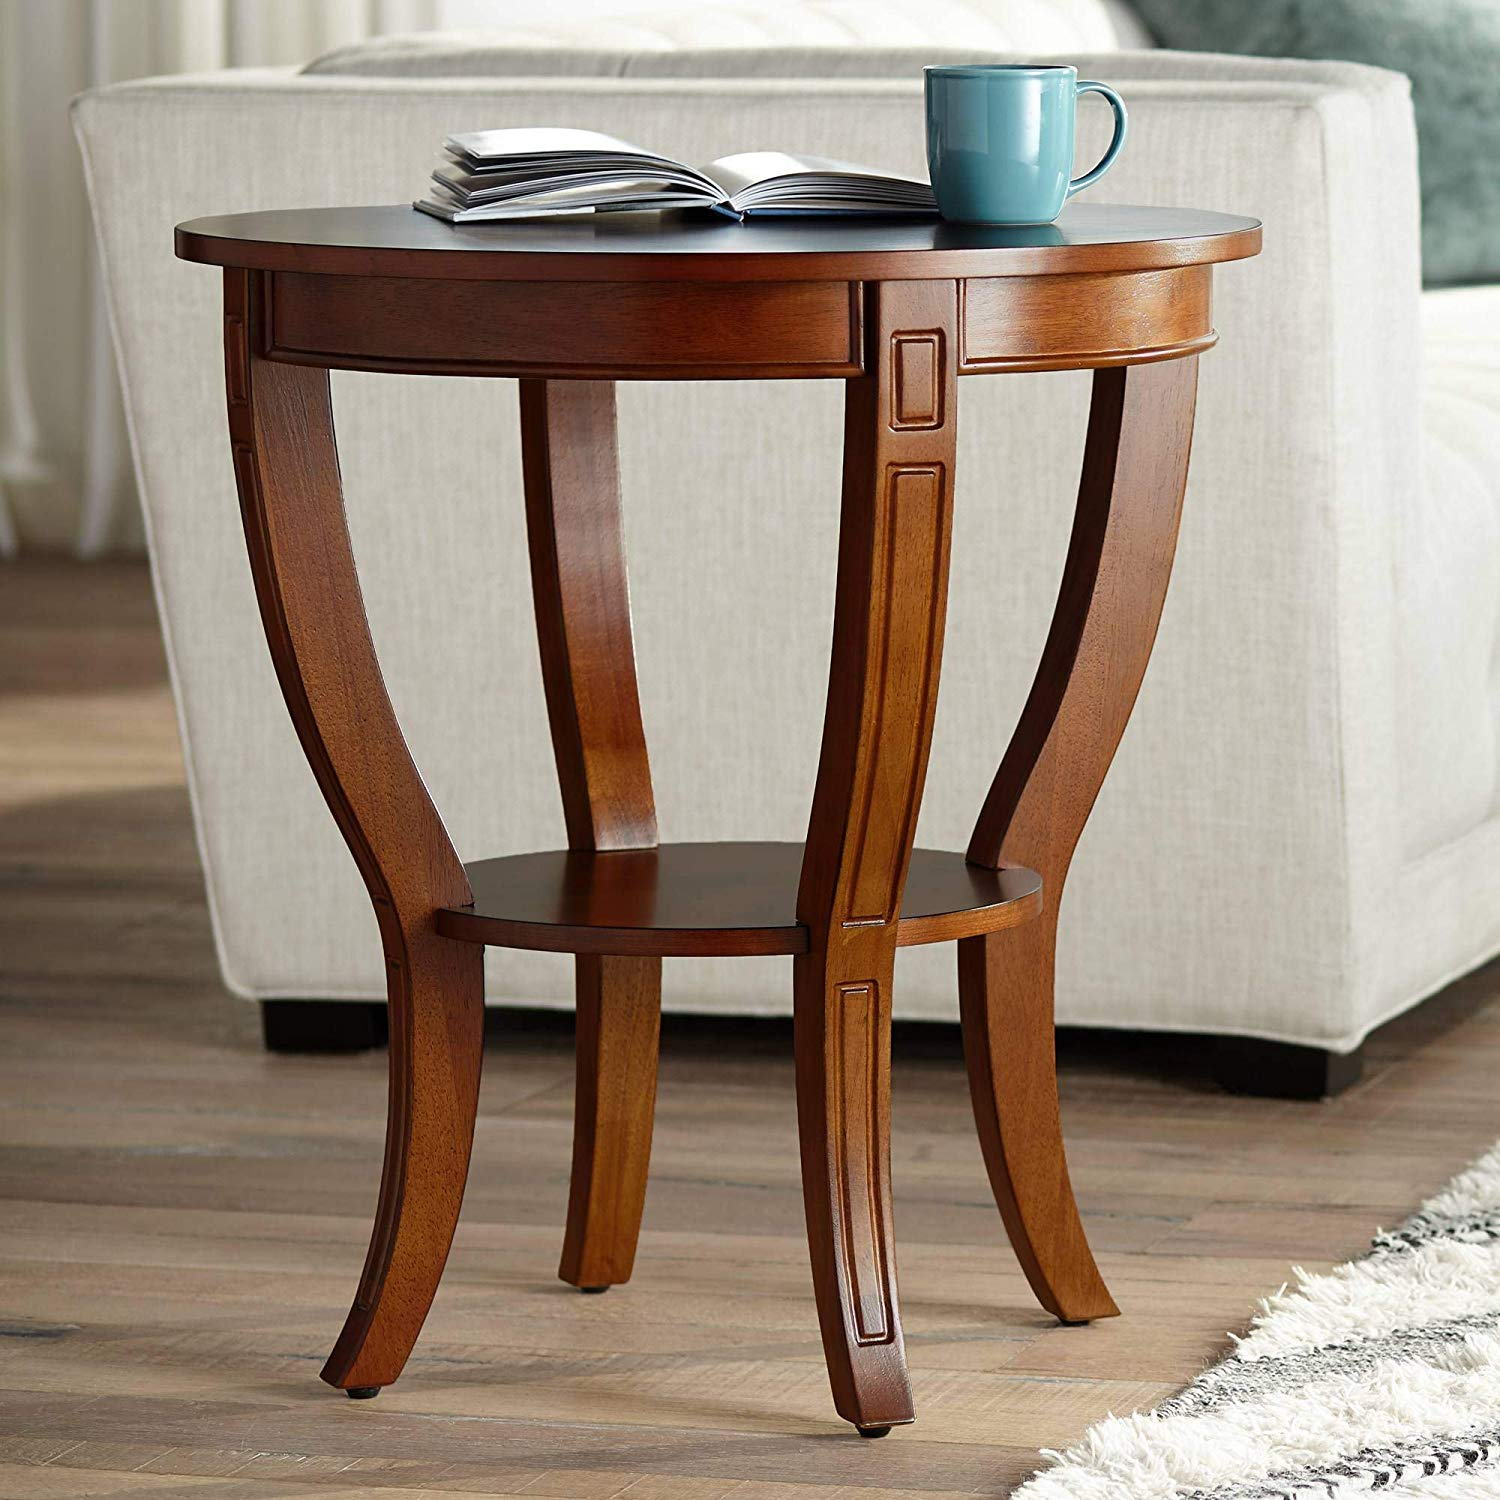 patterson americana wide cherry wood round end table kitchen dining ethan allen console white patio with umbrella hole tree root universal room furniture monarch specialties